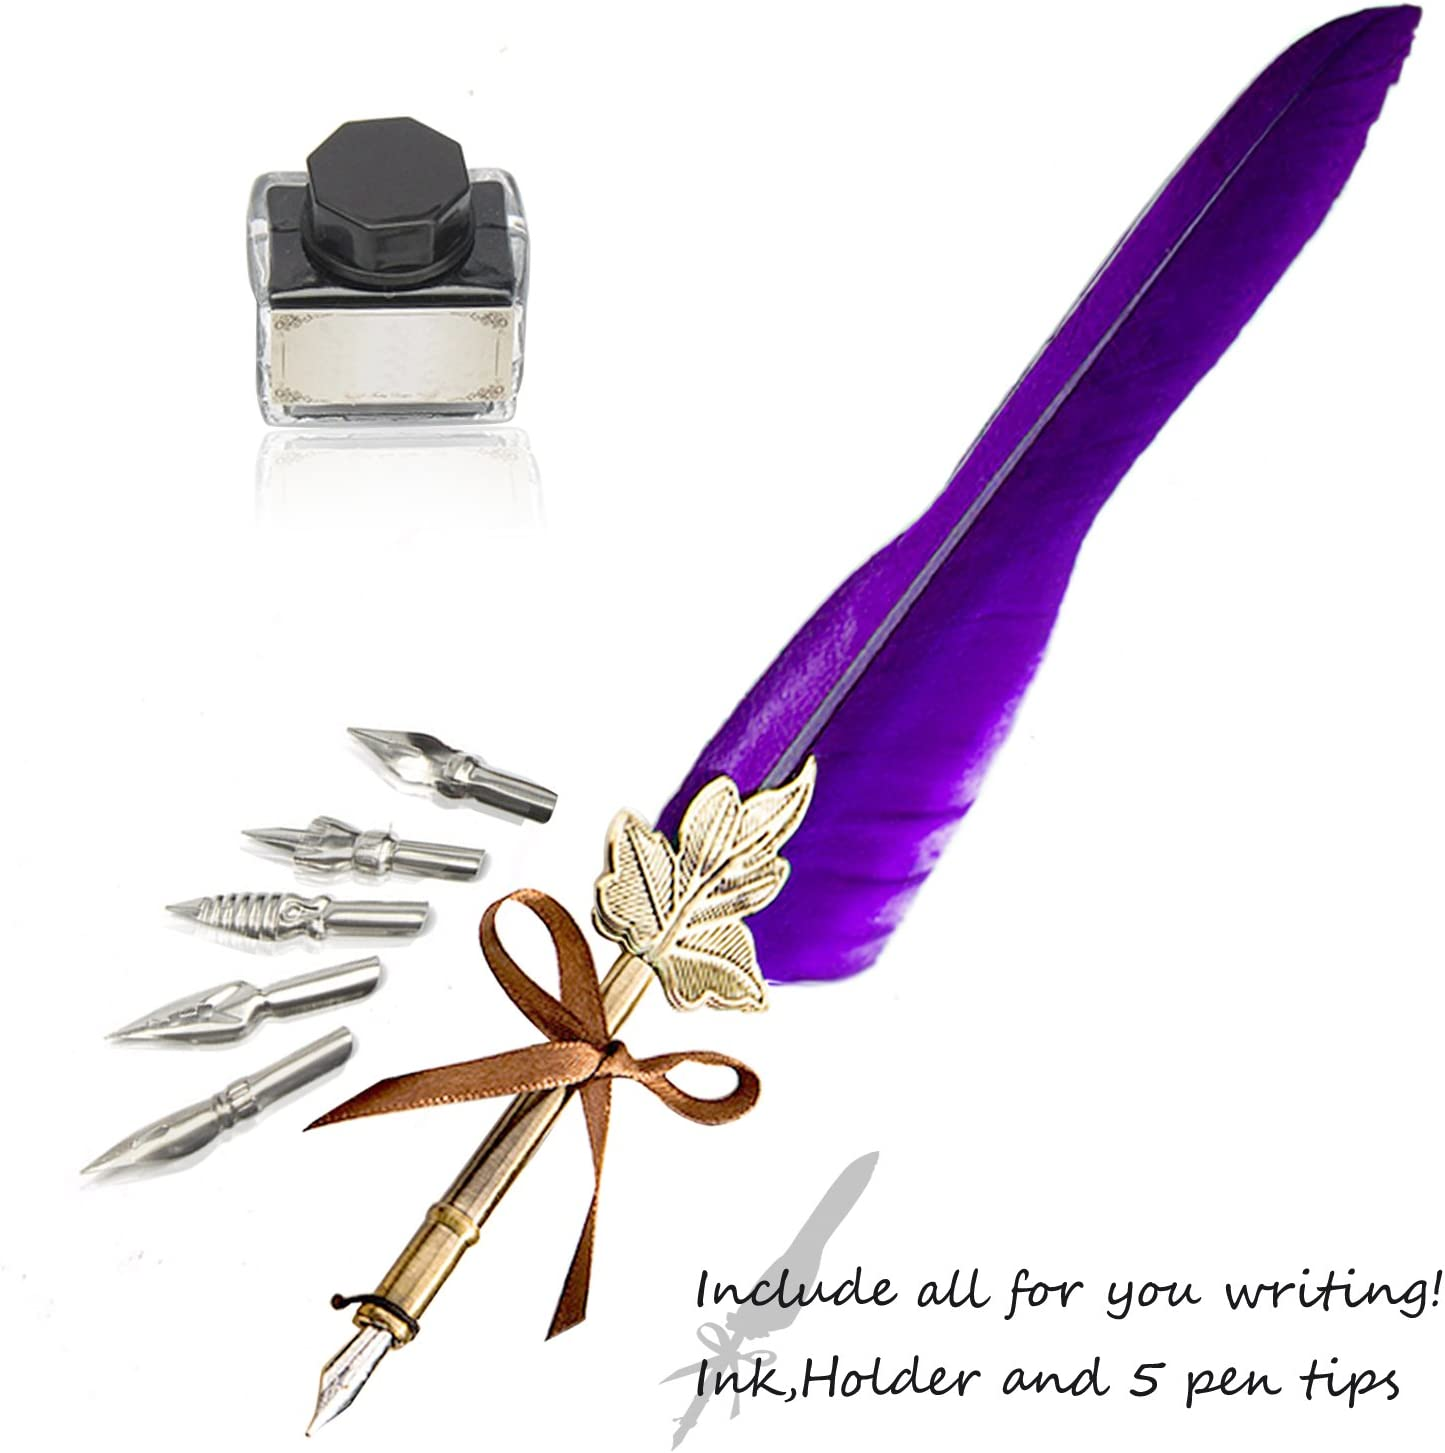 Purple Feather Pen GloDeals Antique Calligraphy Pen Handcrafted Feather Quill Pen Set Writing Quill Dip Pen with 5 Replacement Nibs Pen Nib Base,Dip Ink Bottle in Gift Storage Box